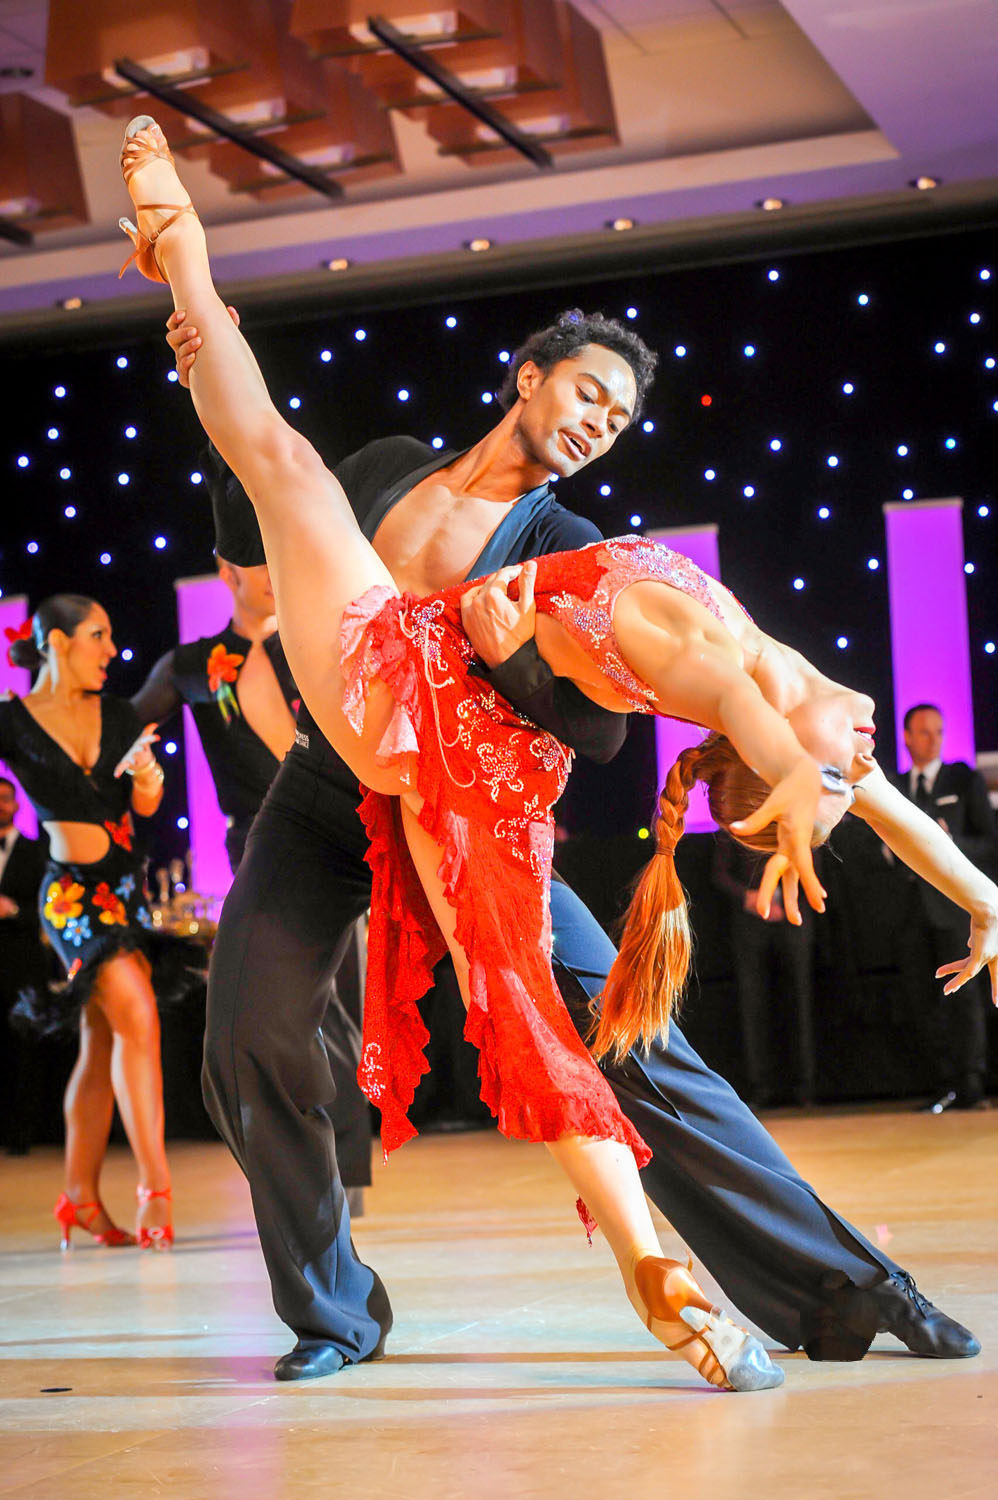 Photography by Alex Rowan of Dancesport Photography